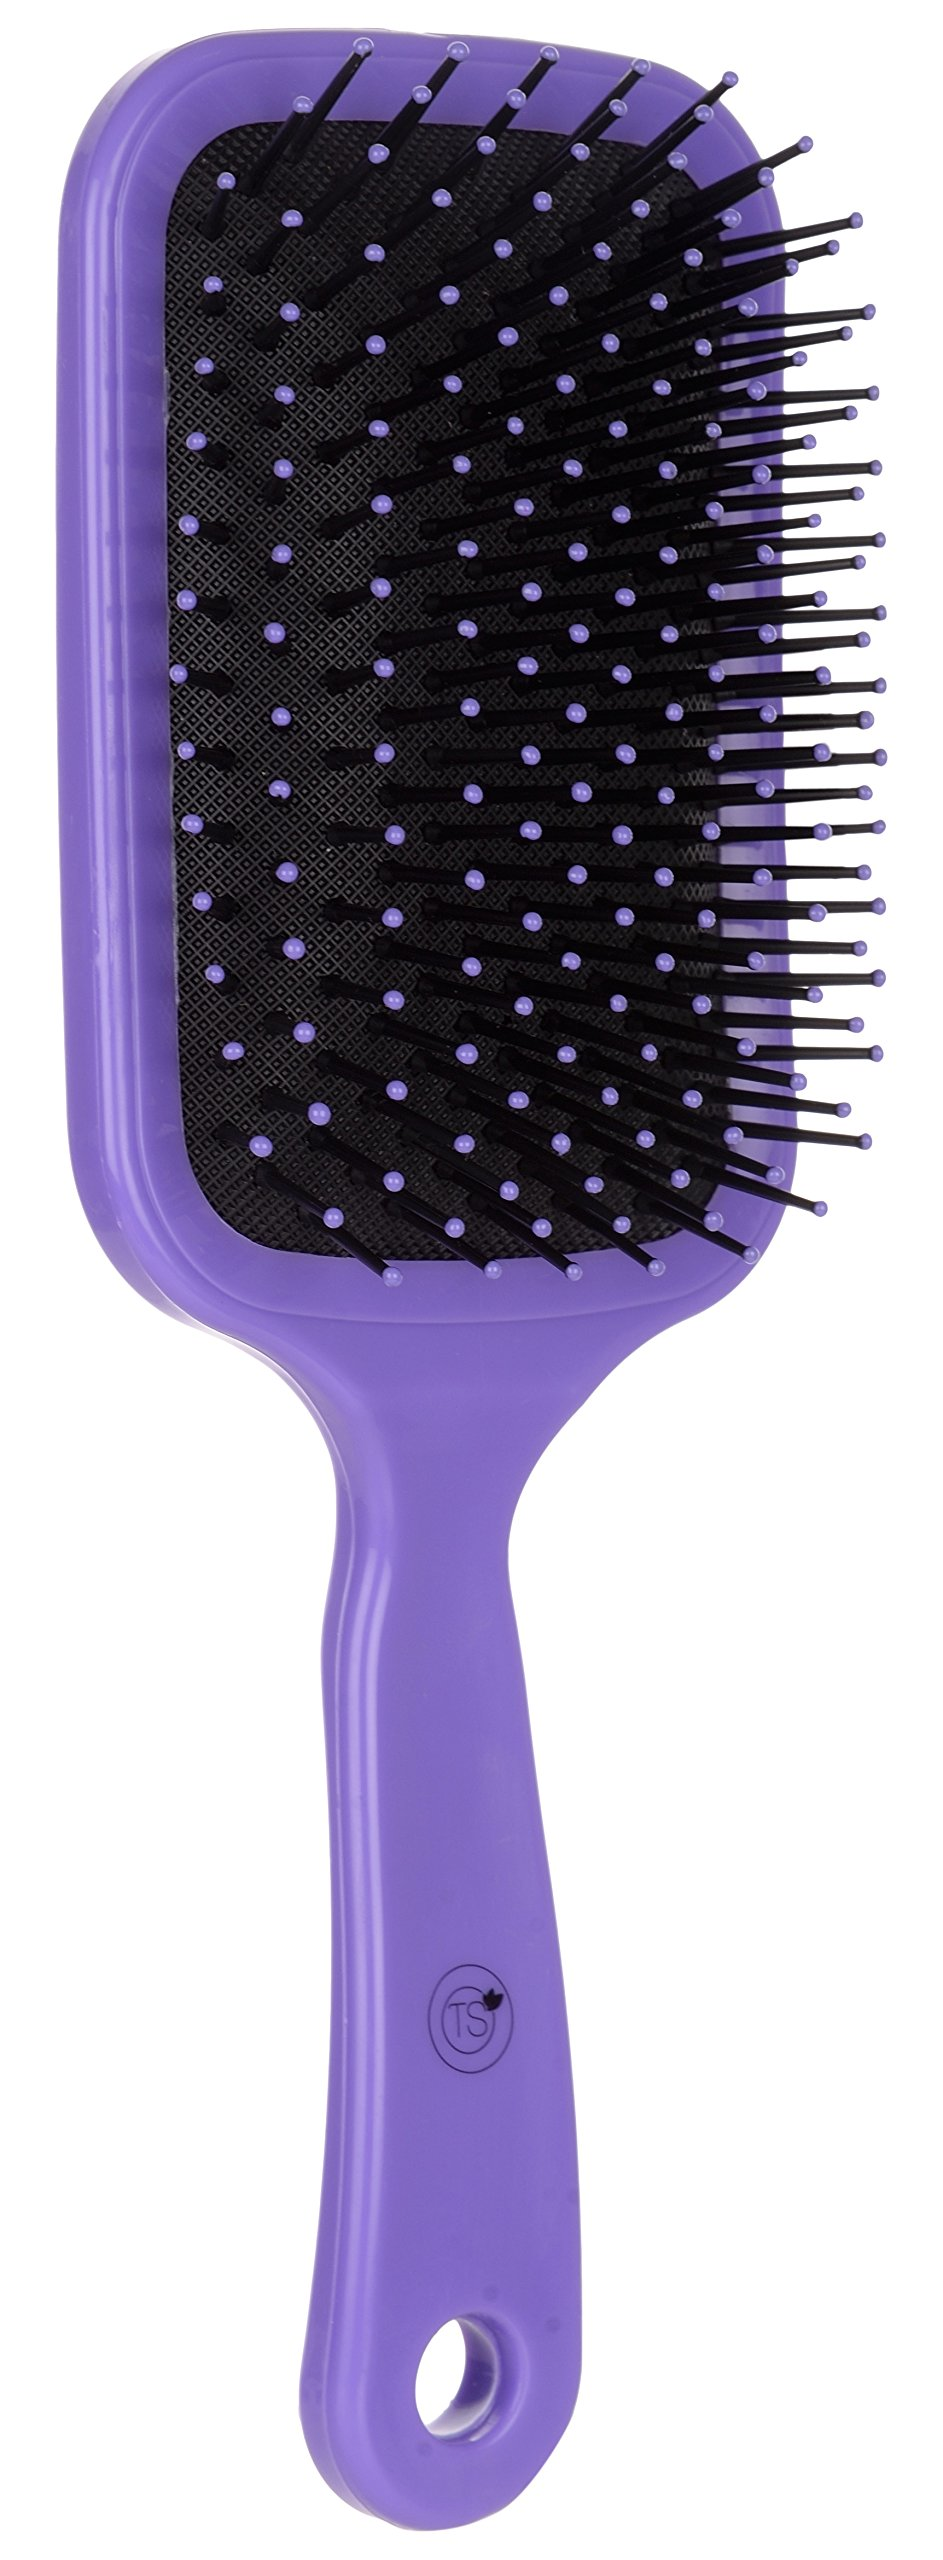 TS Hair Comb/Paddle Brush, Fibre, (Purple), Men And Women by STS